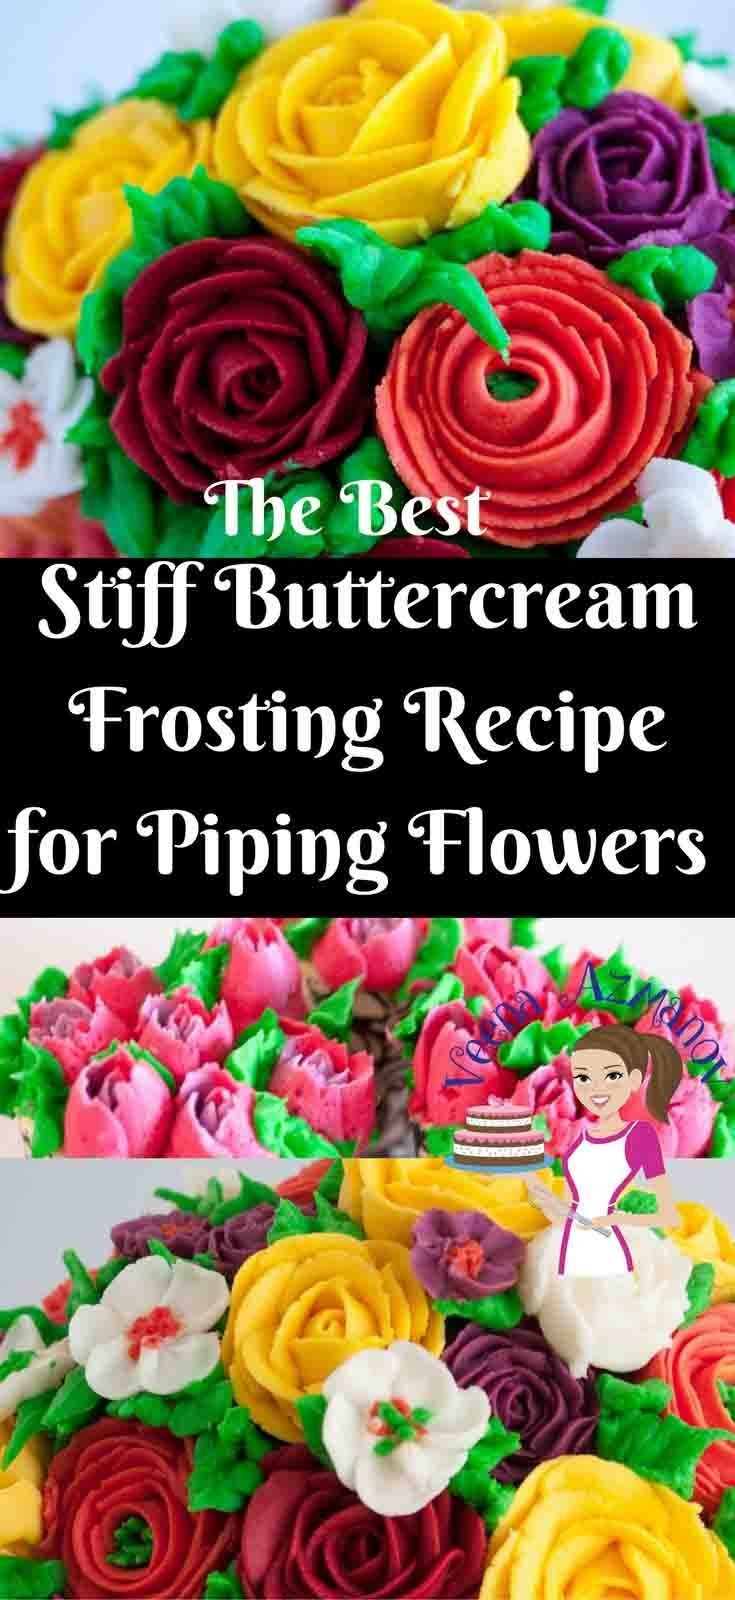 Stiff Cake Decorating Frosting Recipe : Only best 25+ ideas about Buttercream Recipe on Pinterest ...